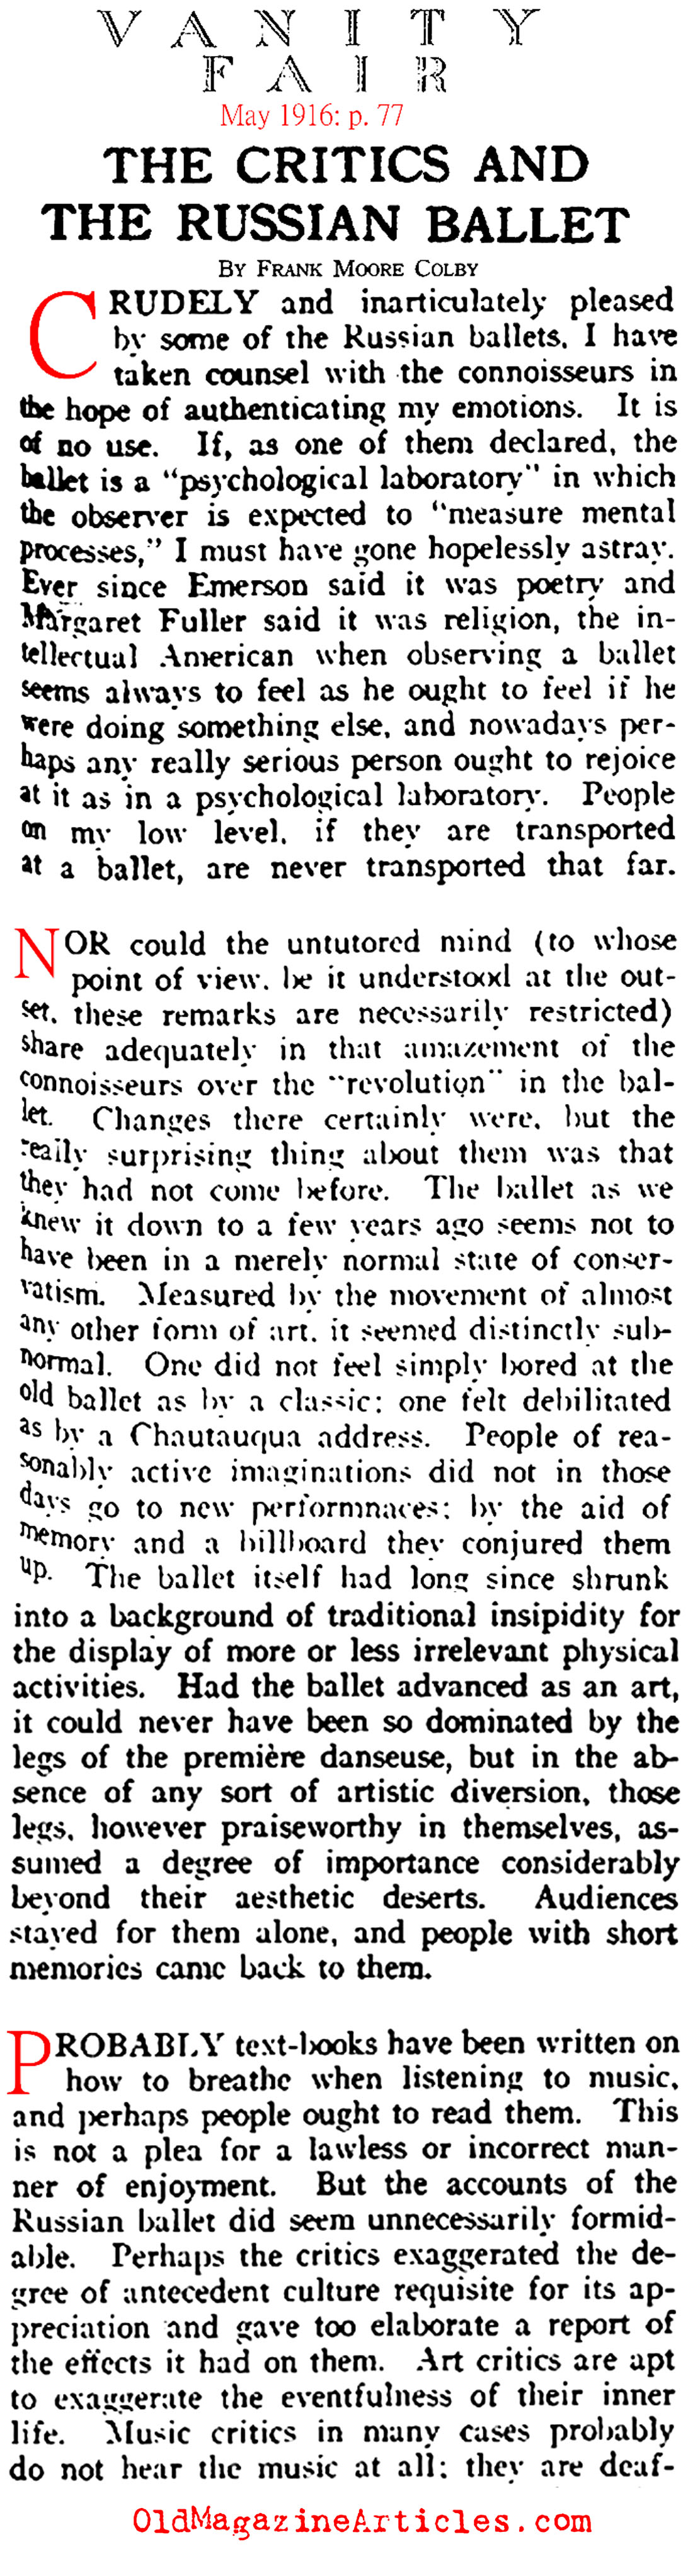 The Critics of the Russian Ballet (Vanity Fair, 1916)